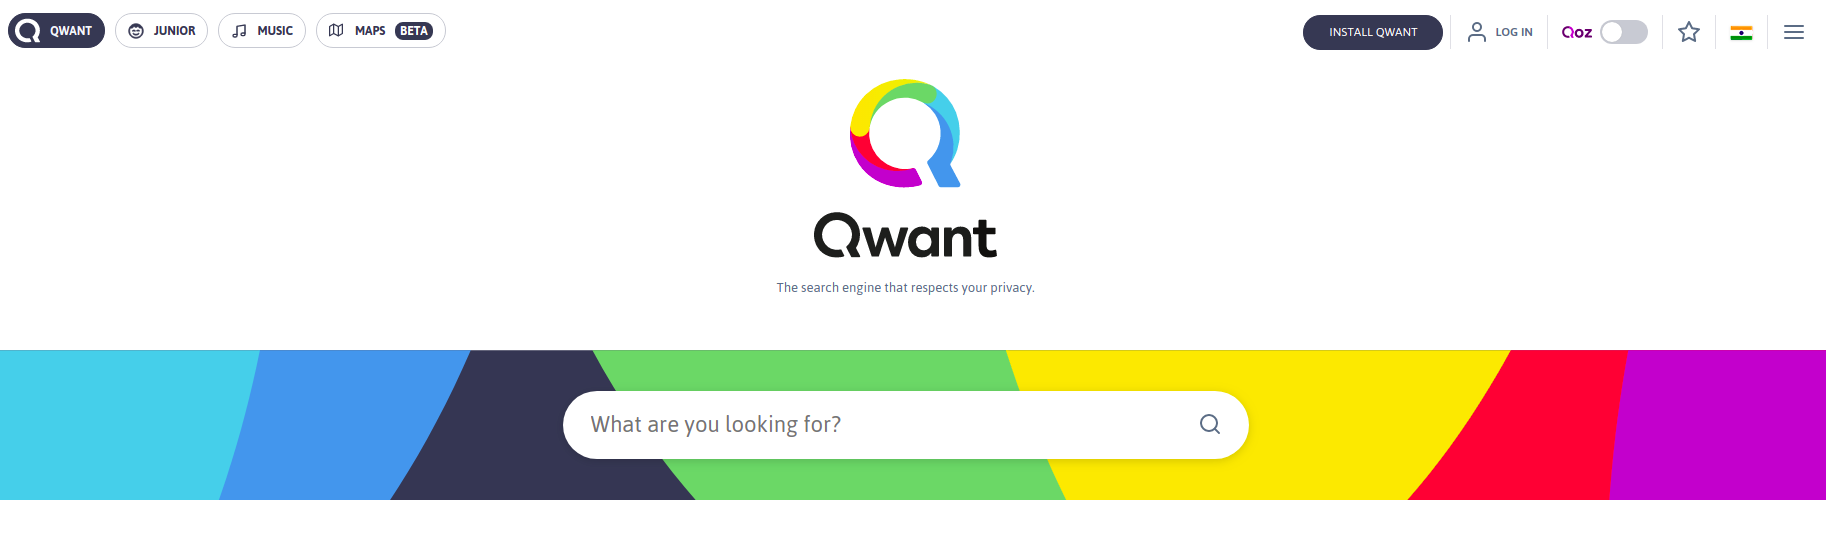 Qwant google alternative search engines